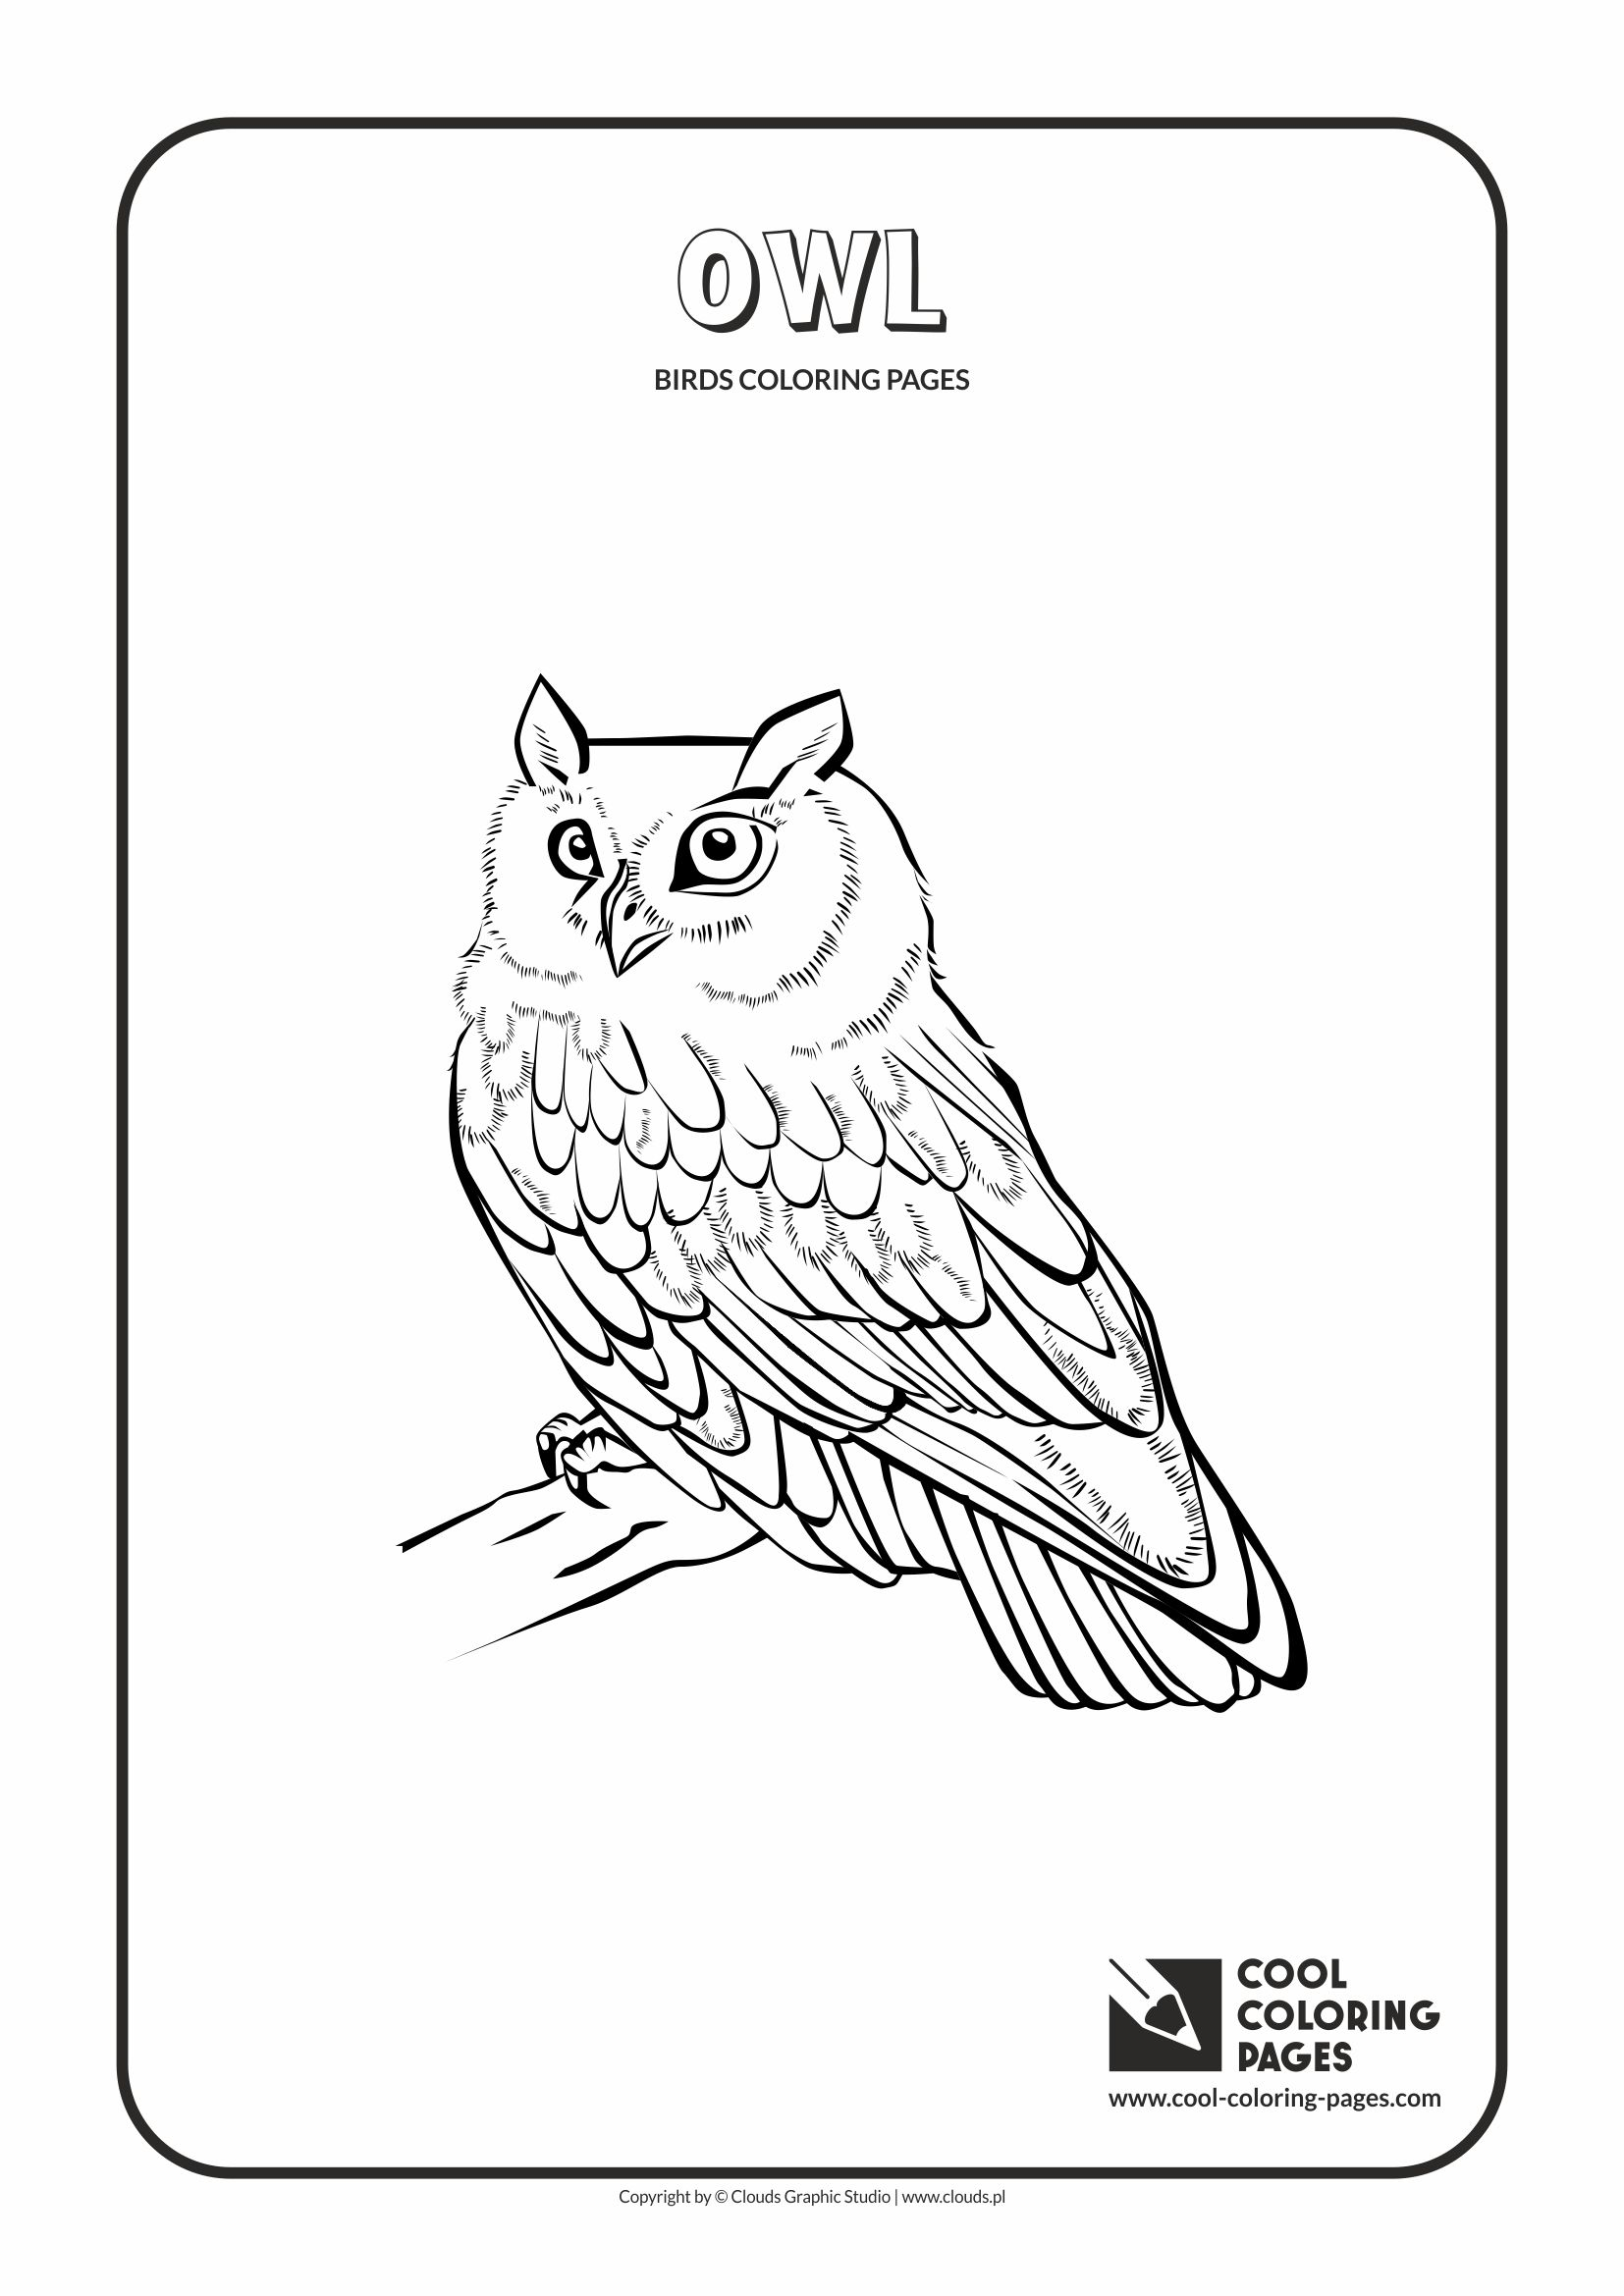 Cool Coloring Pages - Animals / Owl / Coloring page with owl